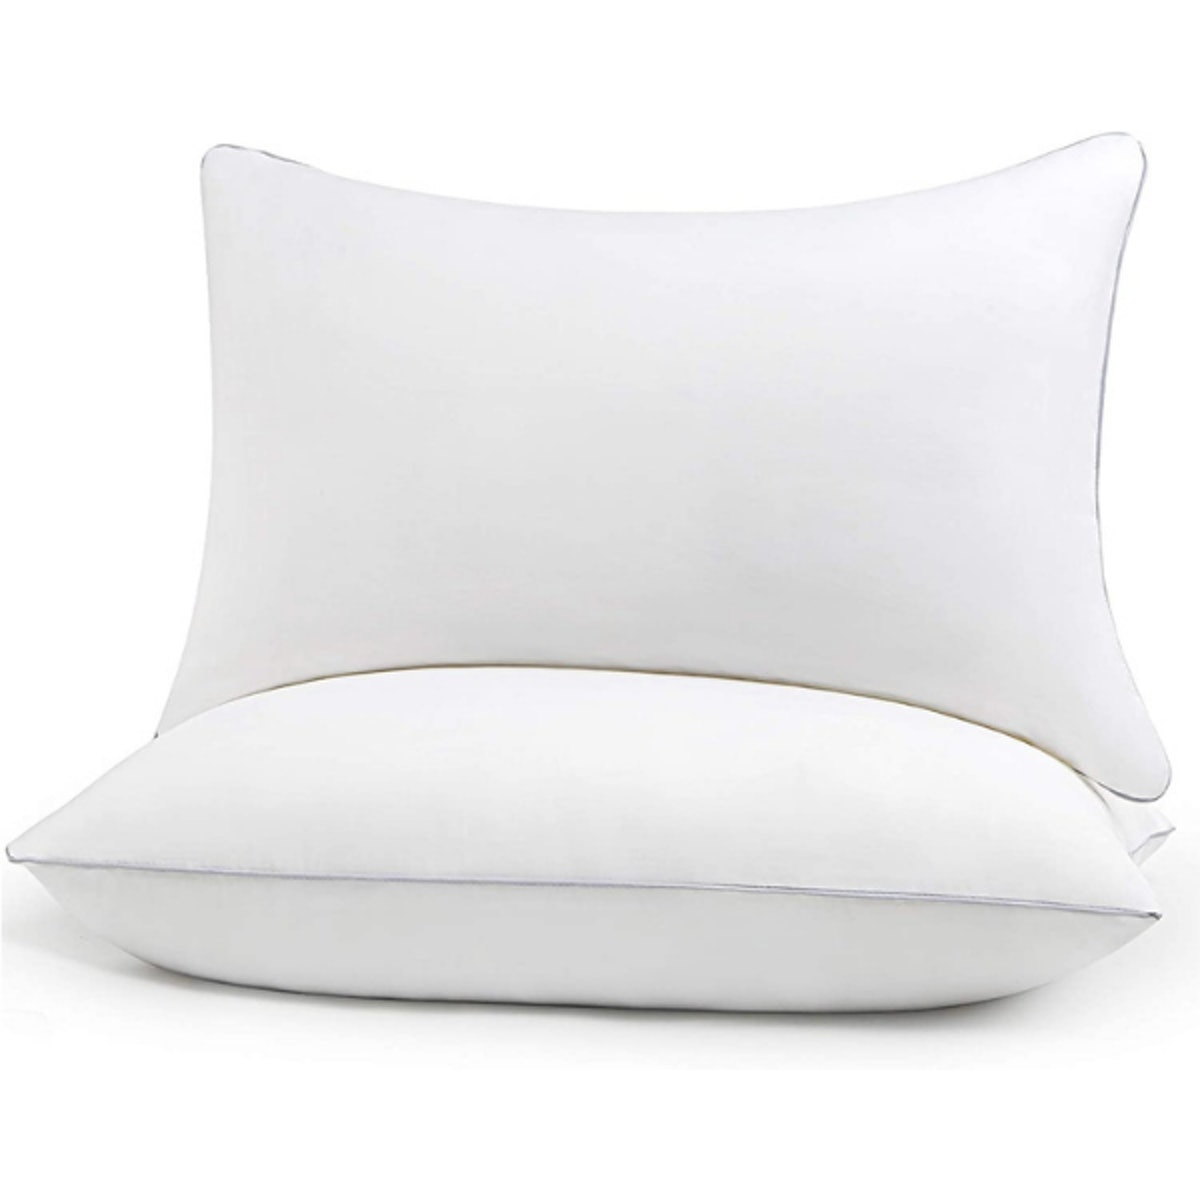 HIMOON Bed Pillows (2 Pack)